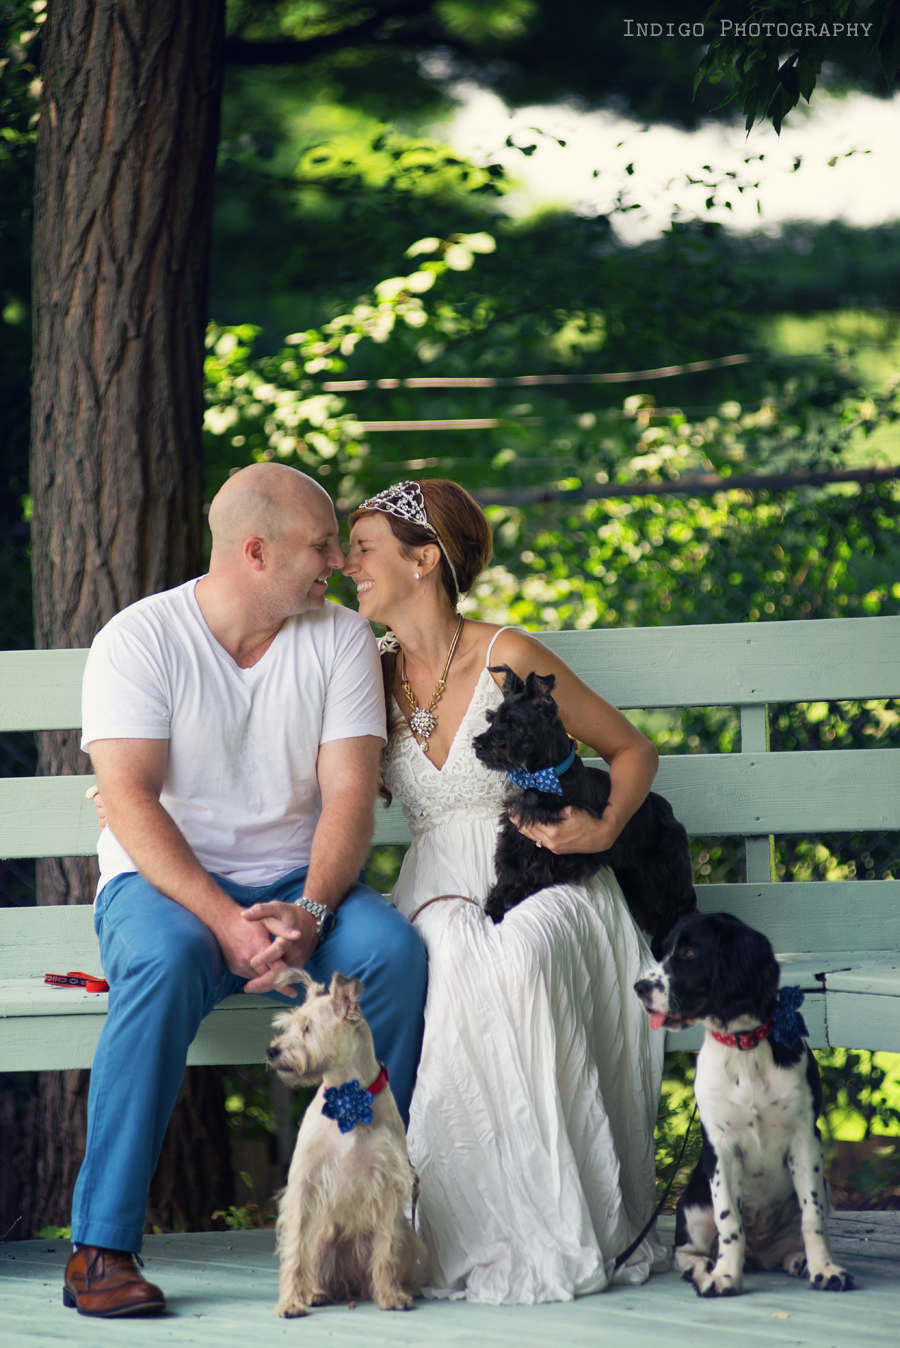 rockford-il-wedding-photographers-indigo-photography